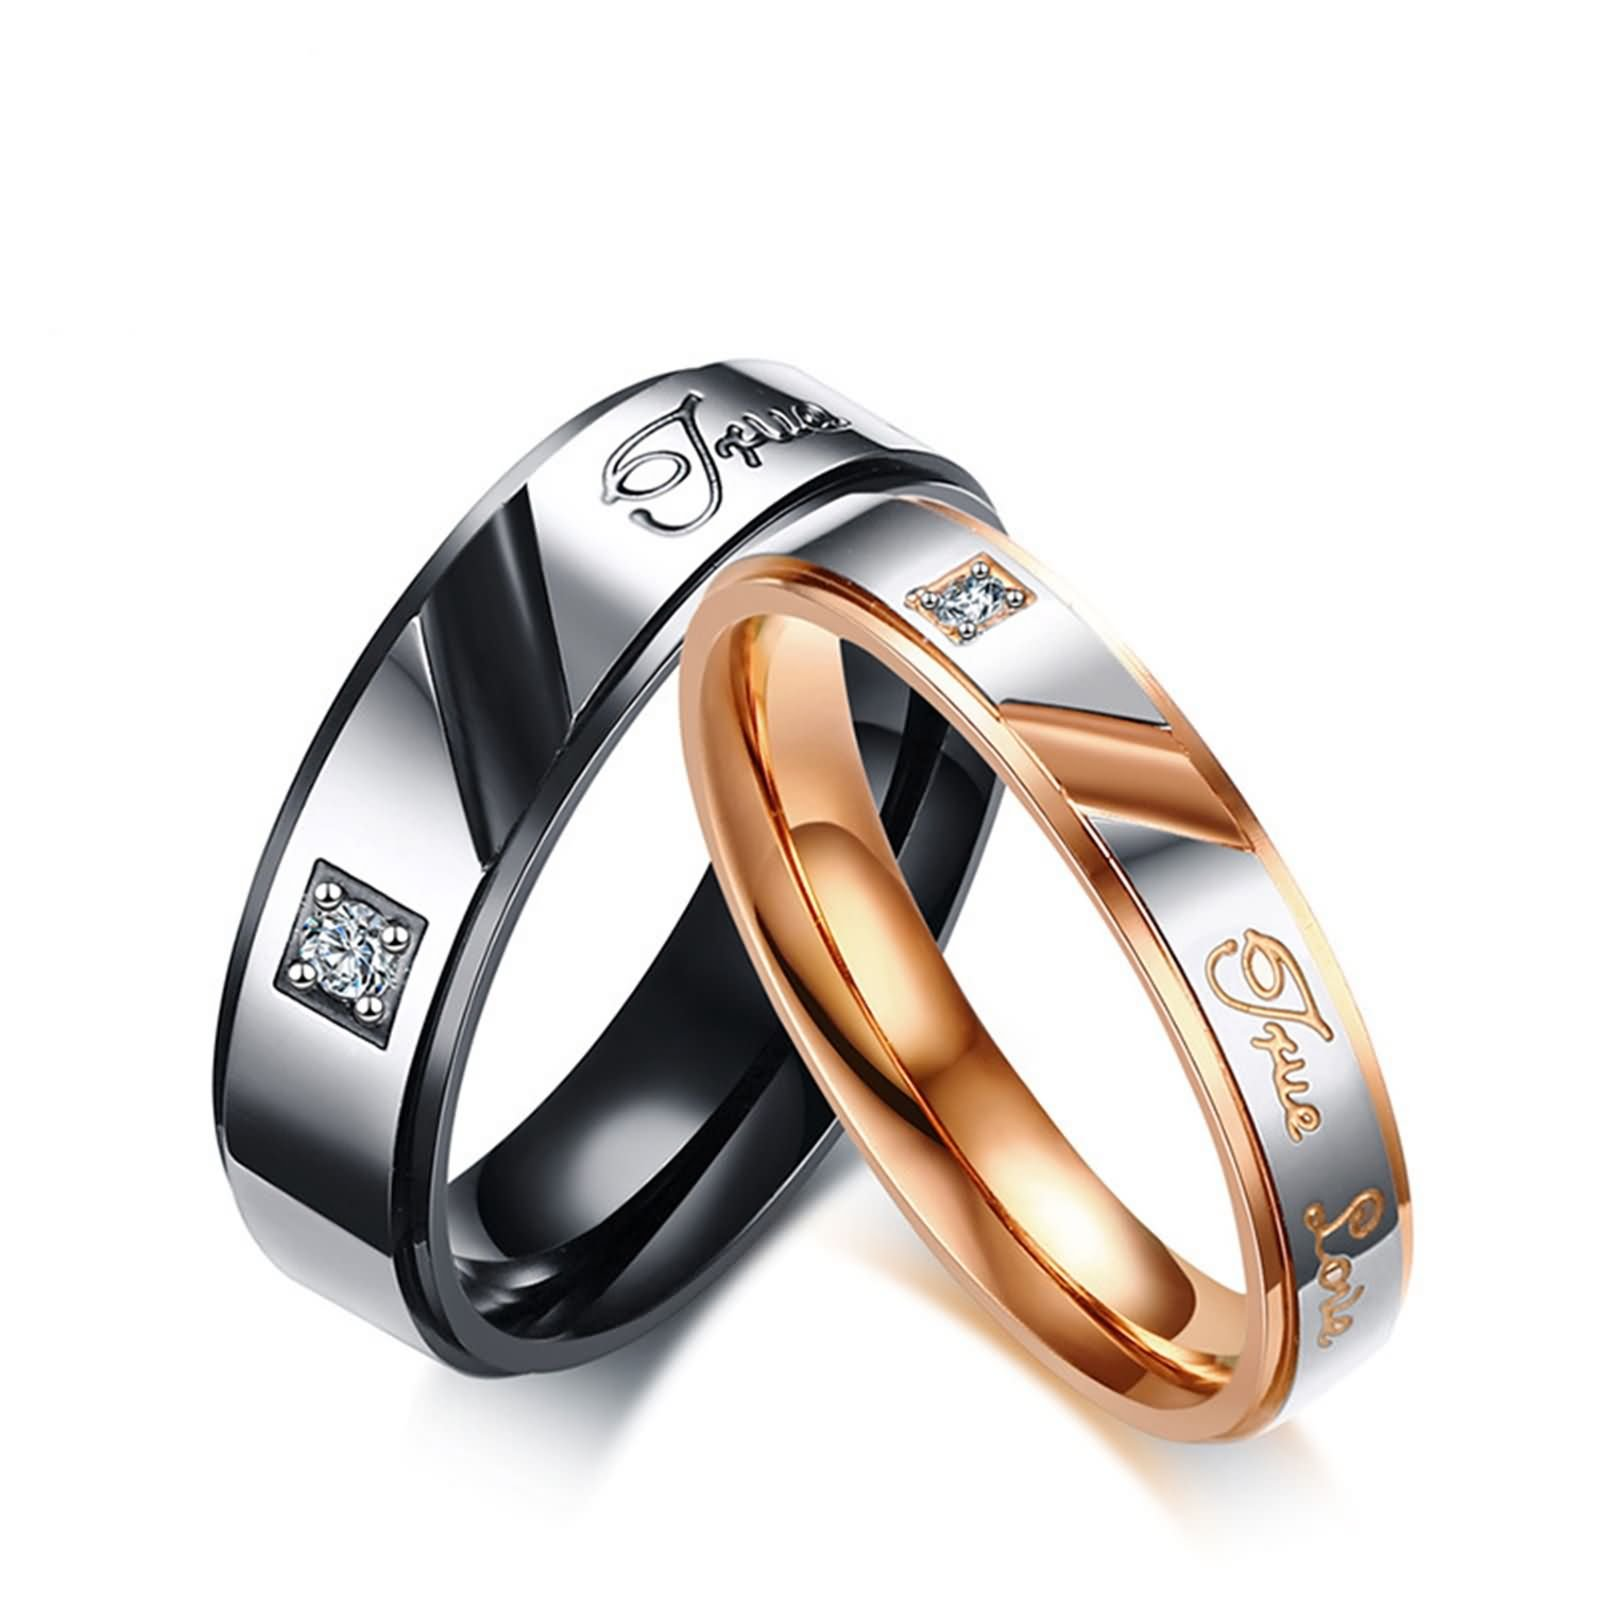 Beydodo Matching Rings for Couples Promise Rings Engagement Rings Stainless Steel true love CZ Size 6 & Size 10